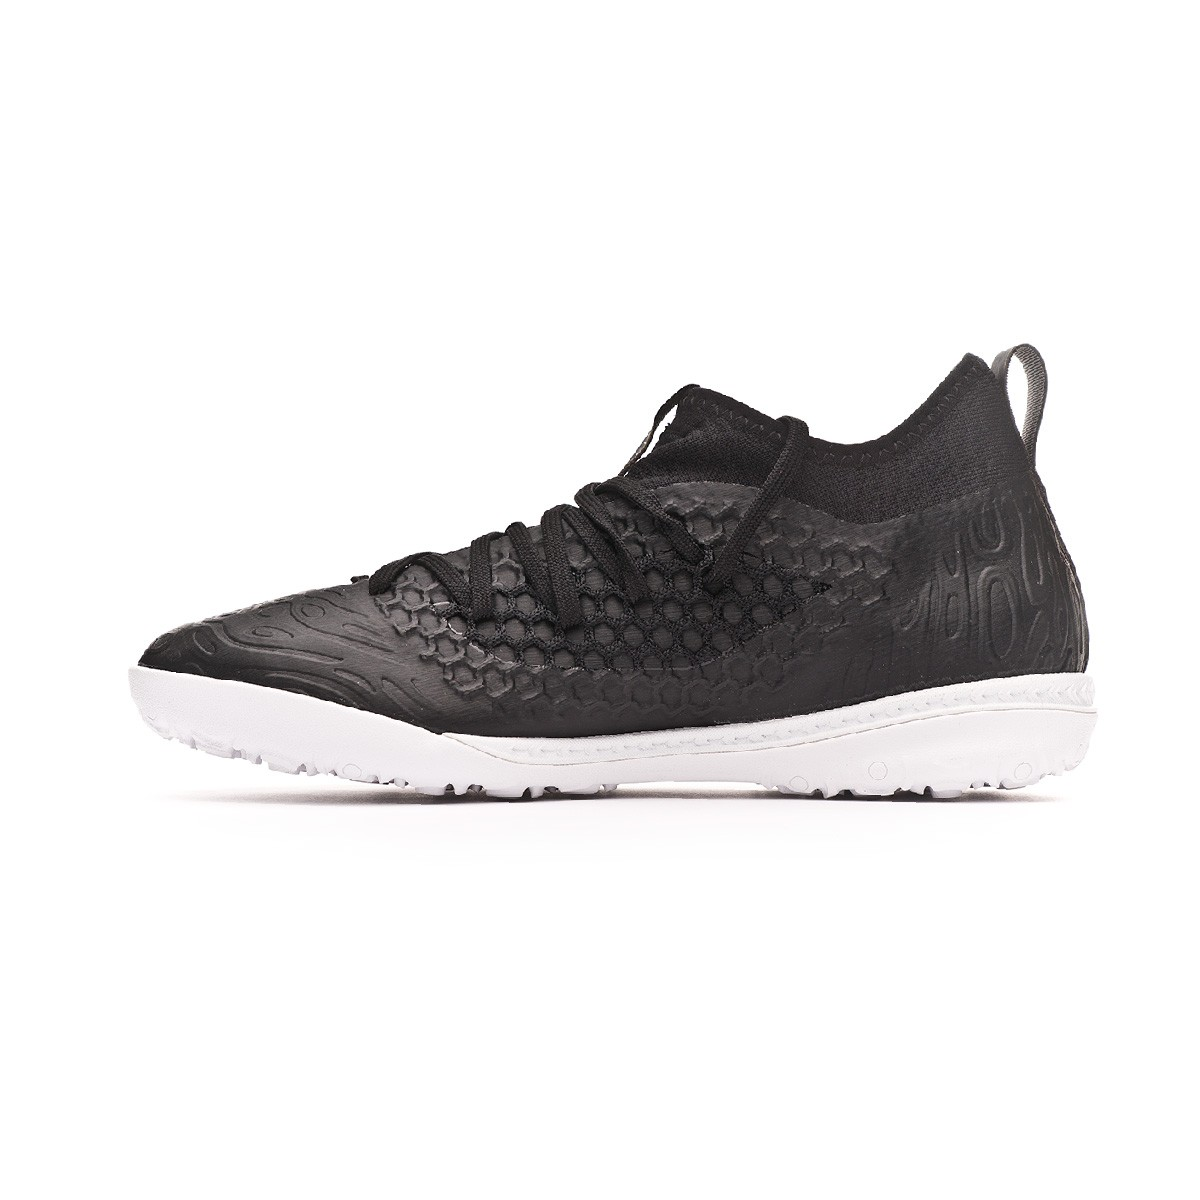 d751781b8 Football Boot Puma Future 19.3 Netfit Turf Black-White - Tienda de fútbol  Fútbol Emotion